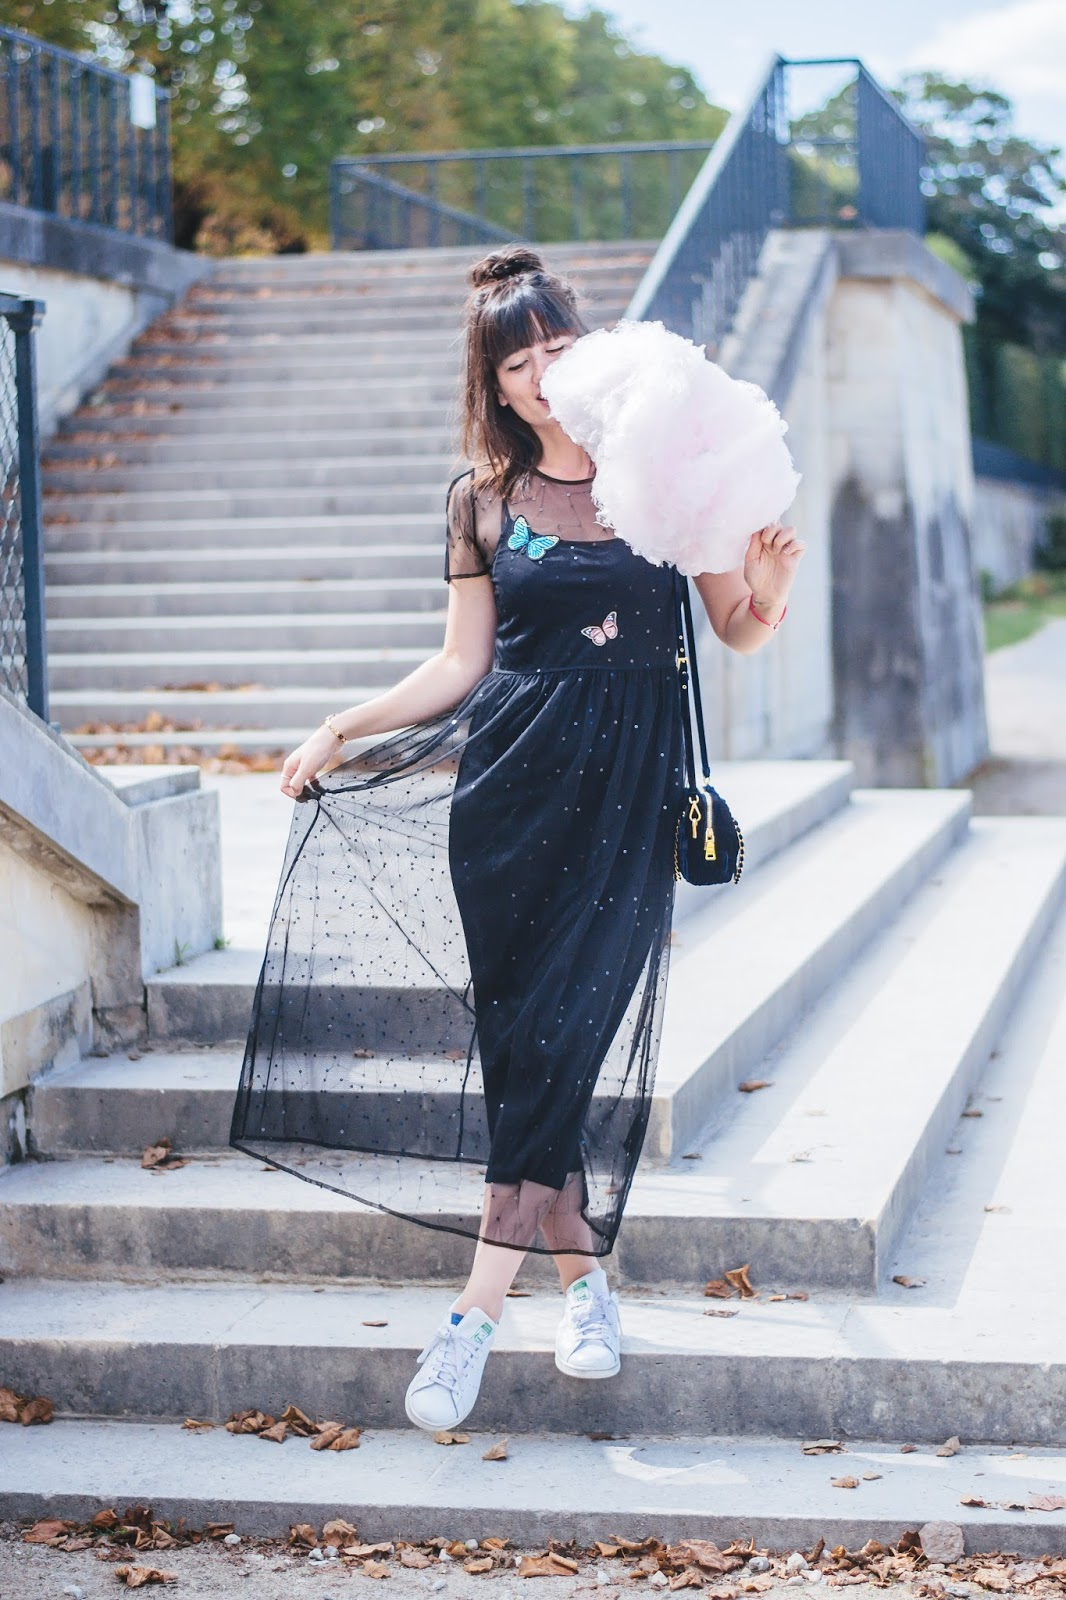 paris-blogger-mode-style-look-fashion-chicparisianfashion-mode